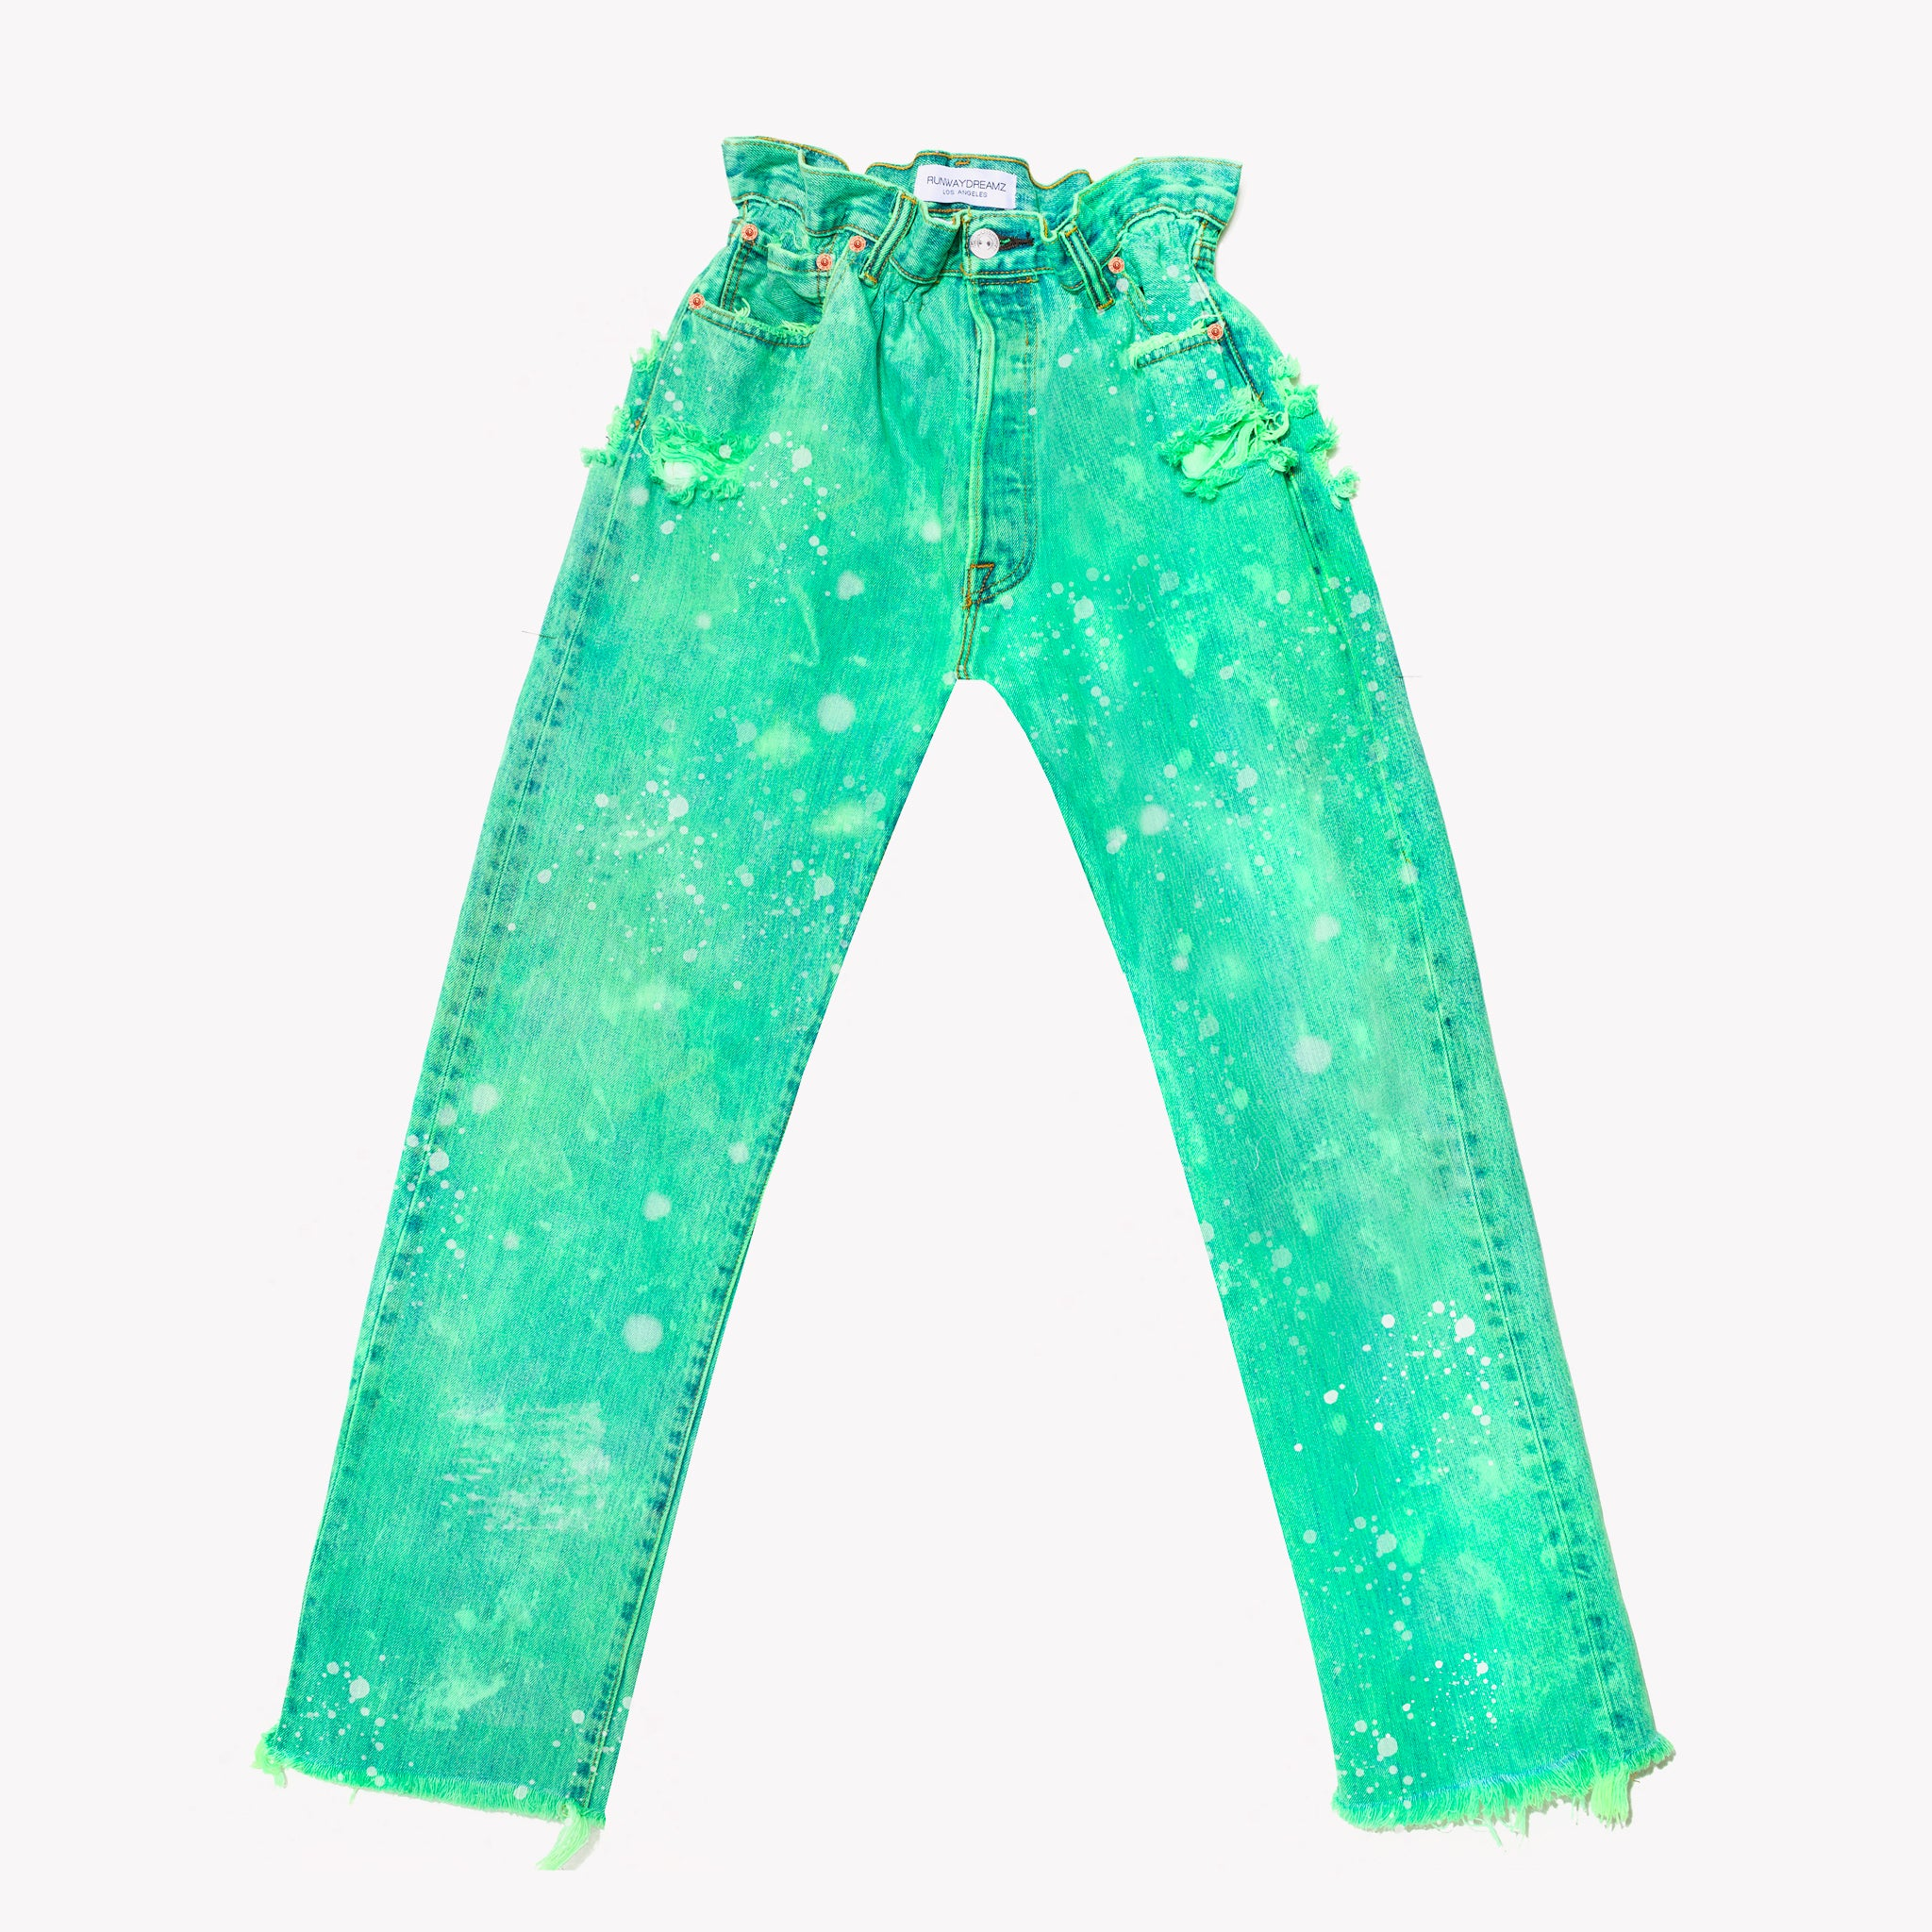 Boho Neon Clouds Vintage High Waisted Jeans